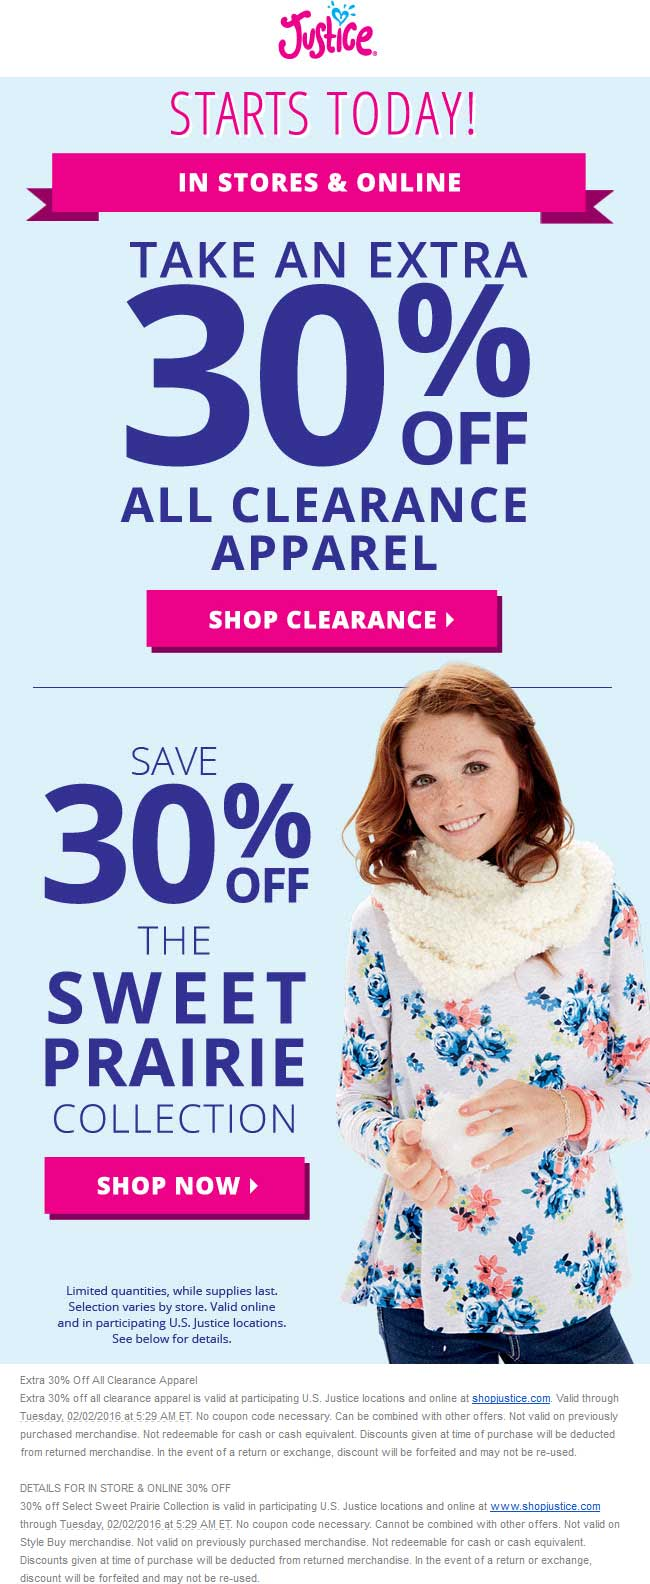 Justice Coupon February 2019 Extra 30% off clearance & prairie collection at Justice, ditto online